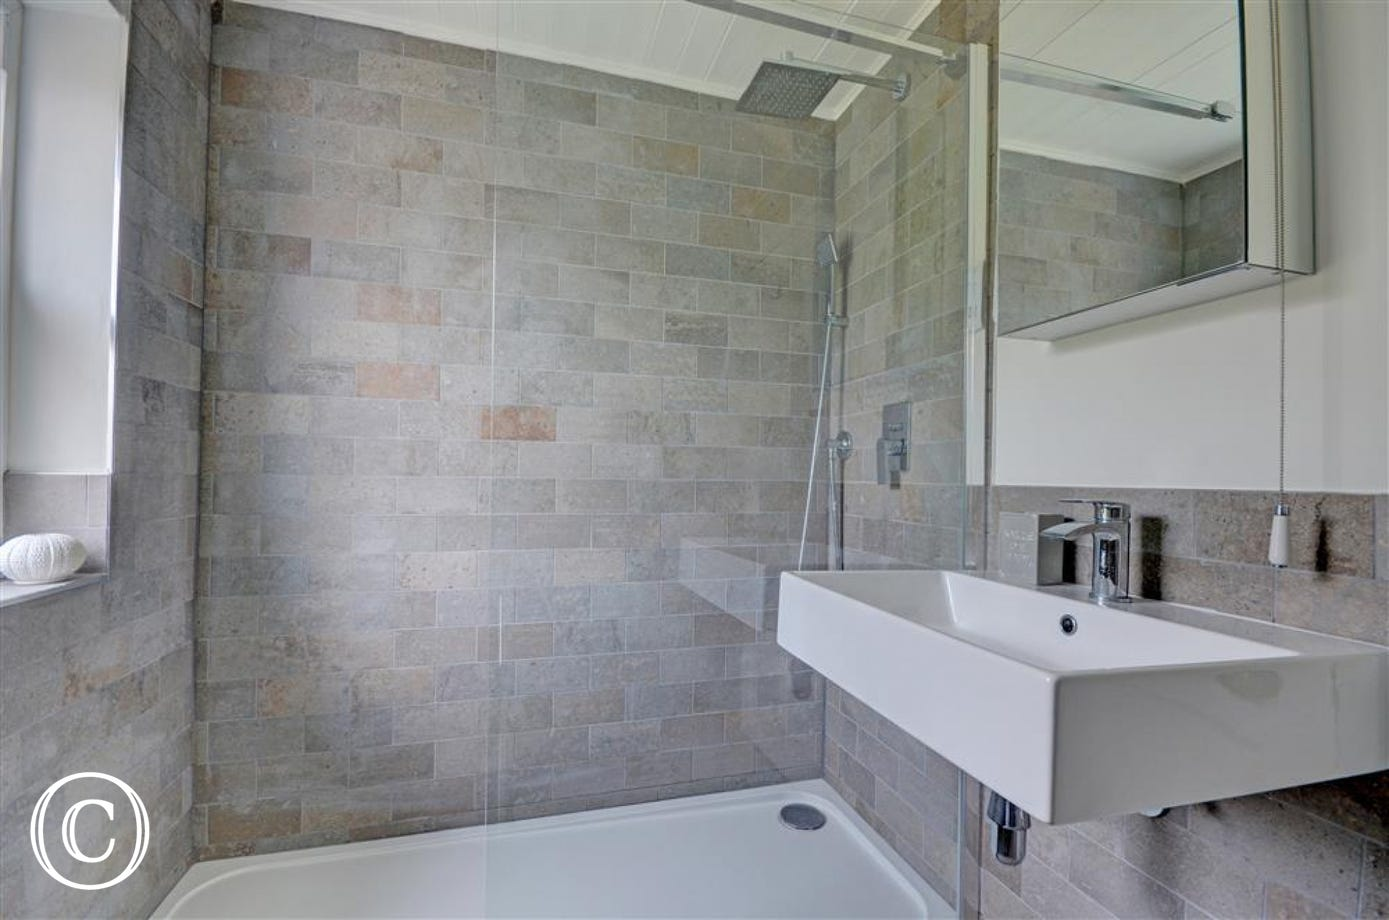 Tiled shower room with large shower cubicle